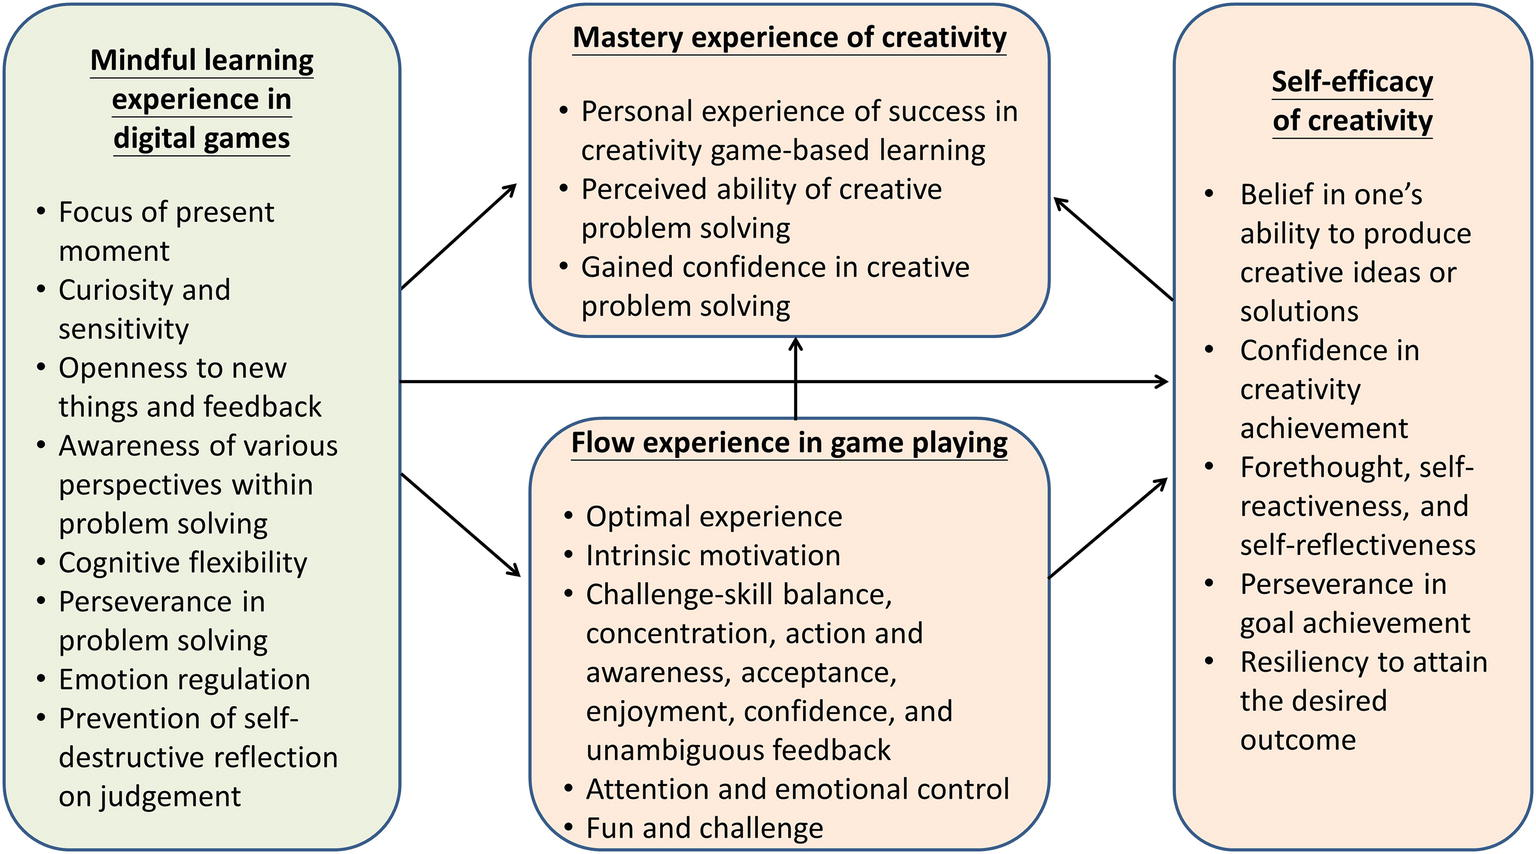 Frontiers | Mindful Learning Experience Facilitates Mastery